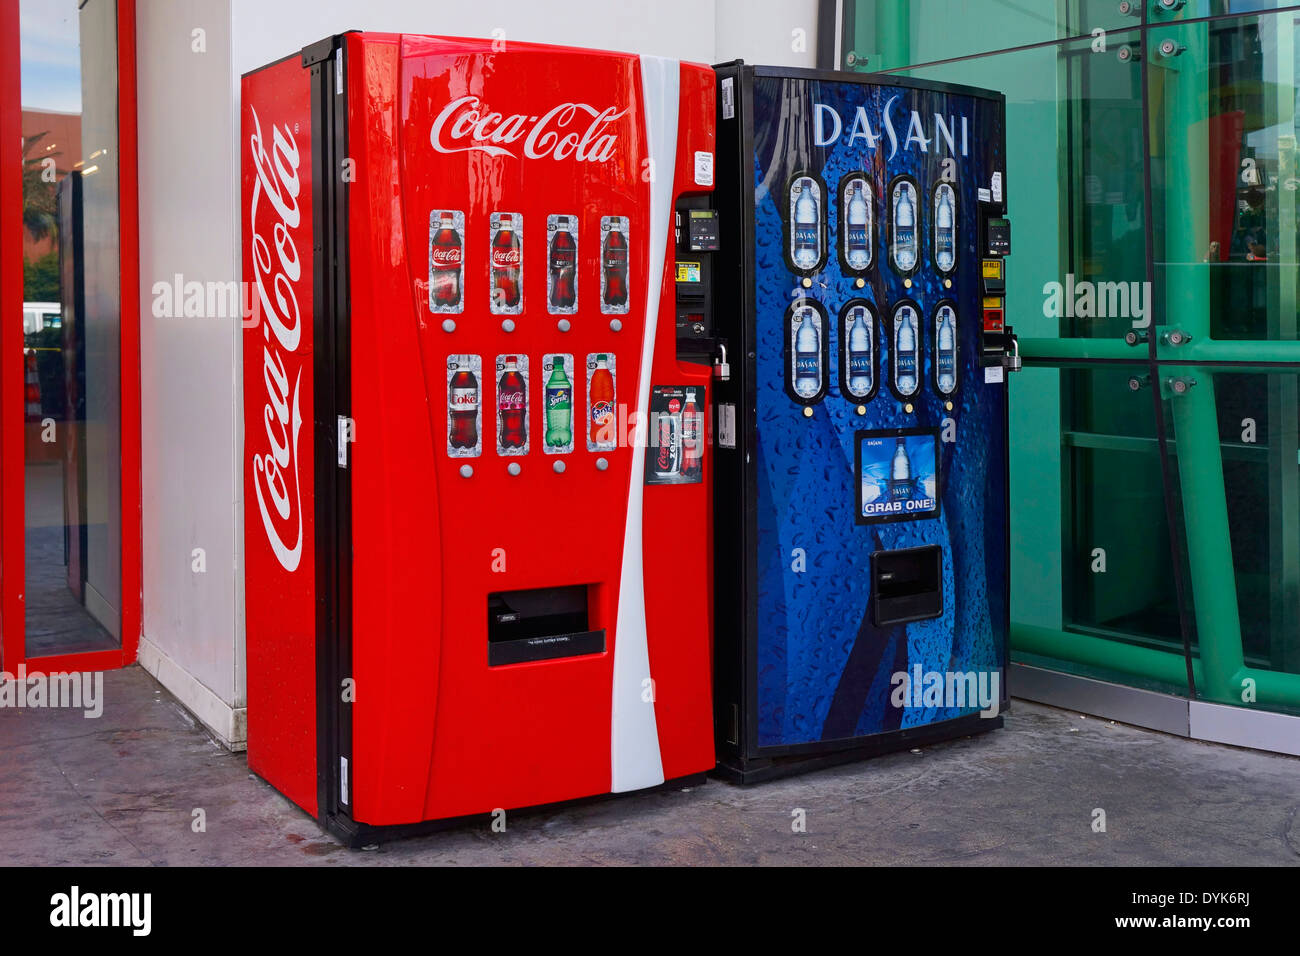 Soft Drinks and Water Vending Machines - Stock Image